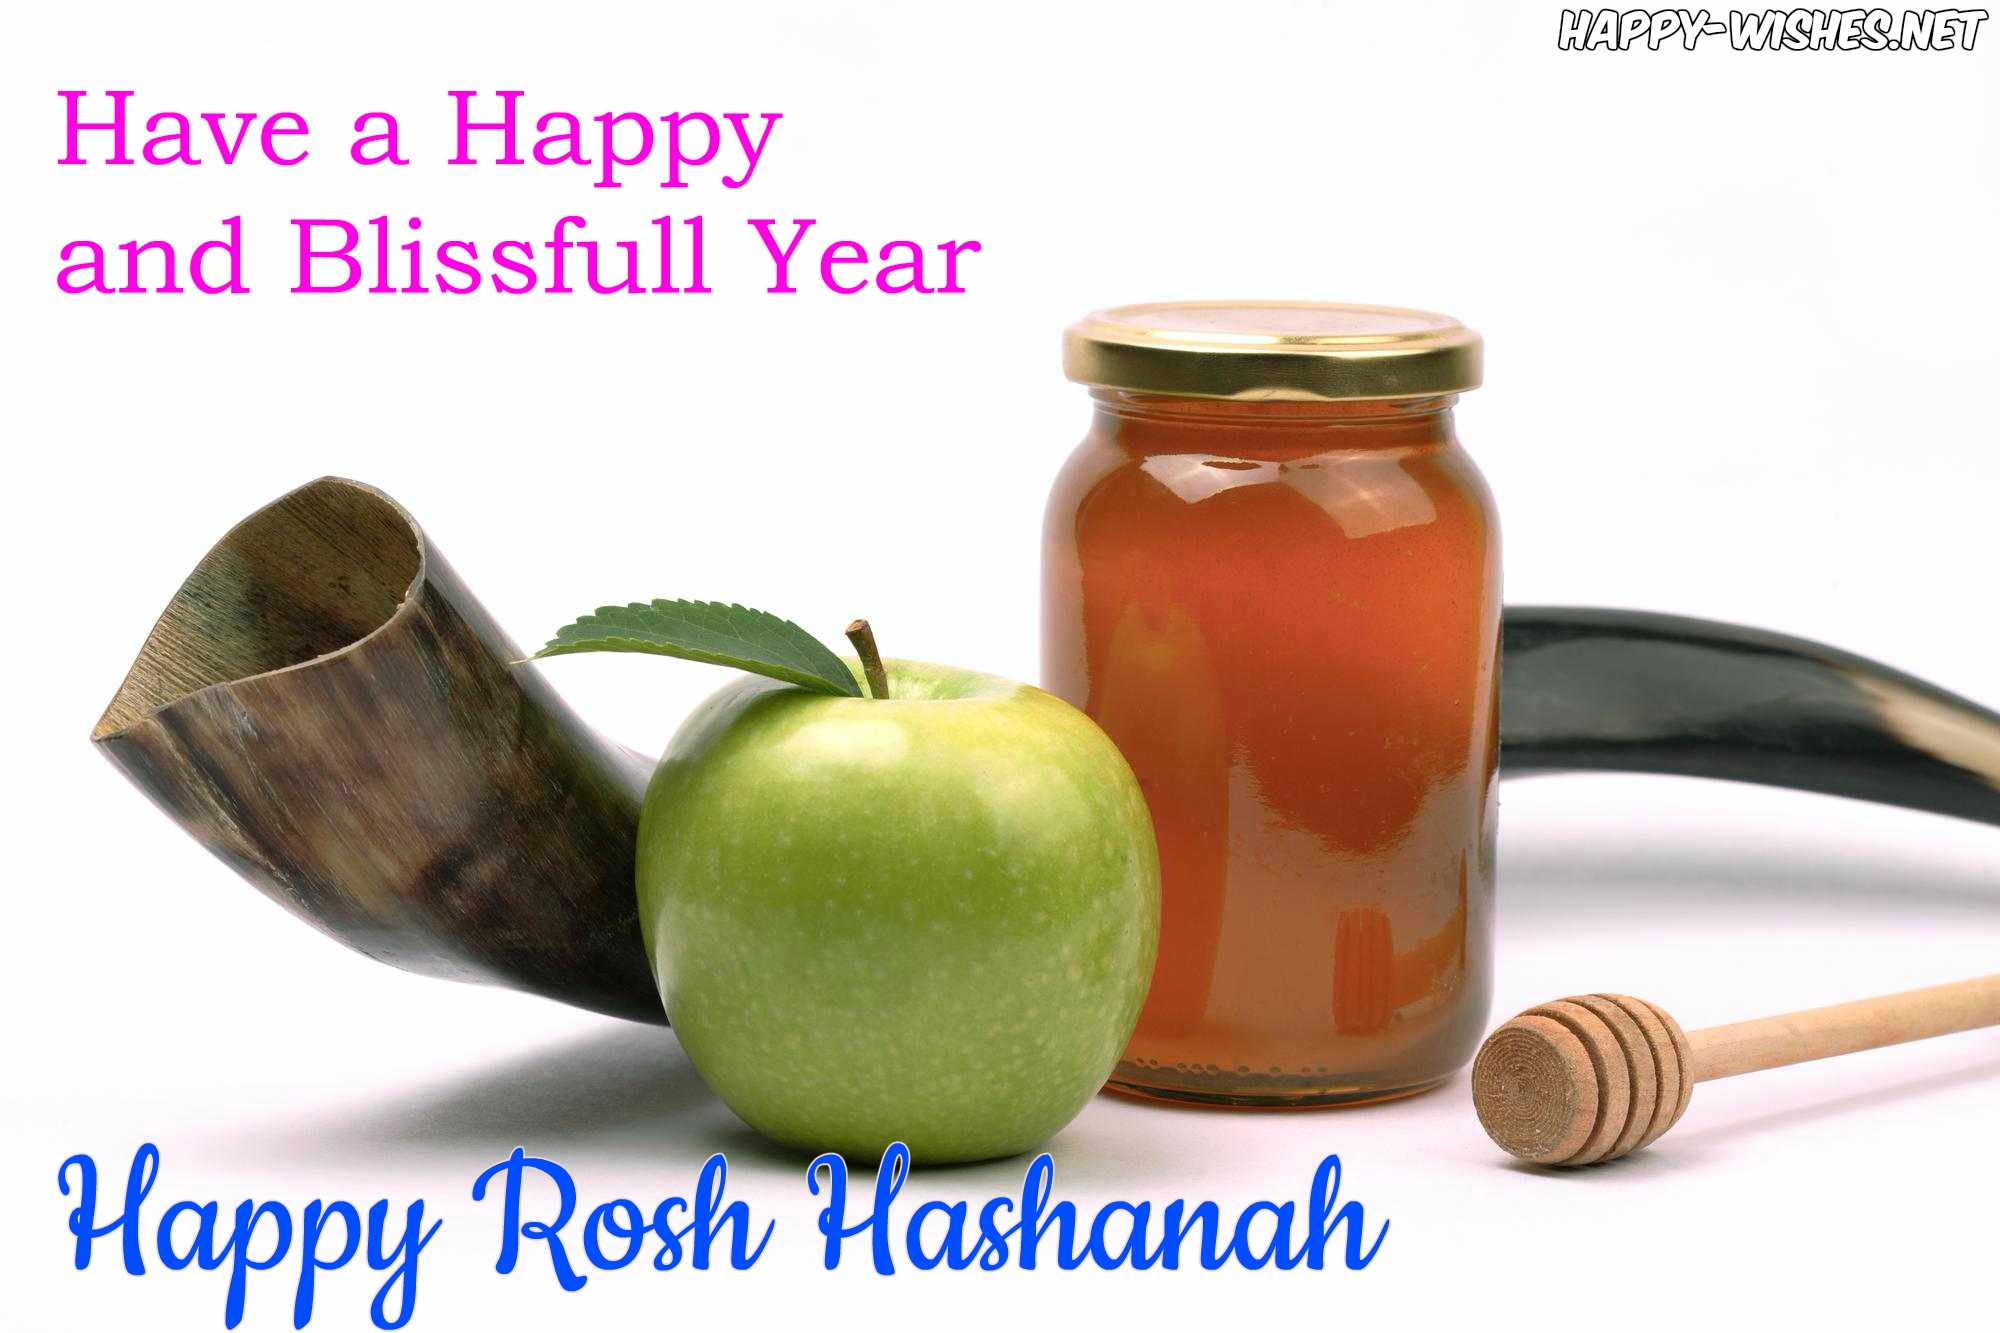 Sweet Images on Rosh Hashanah